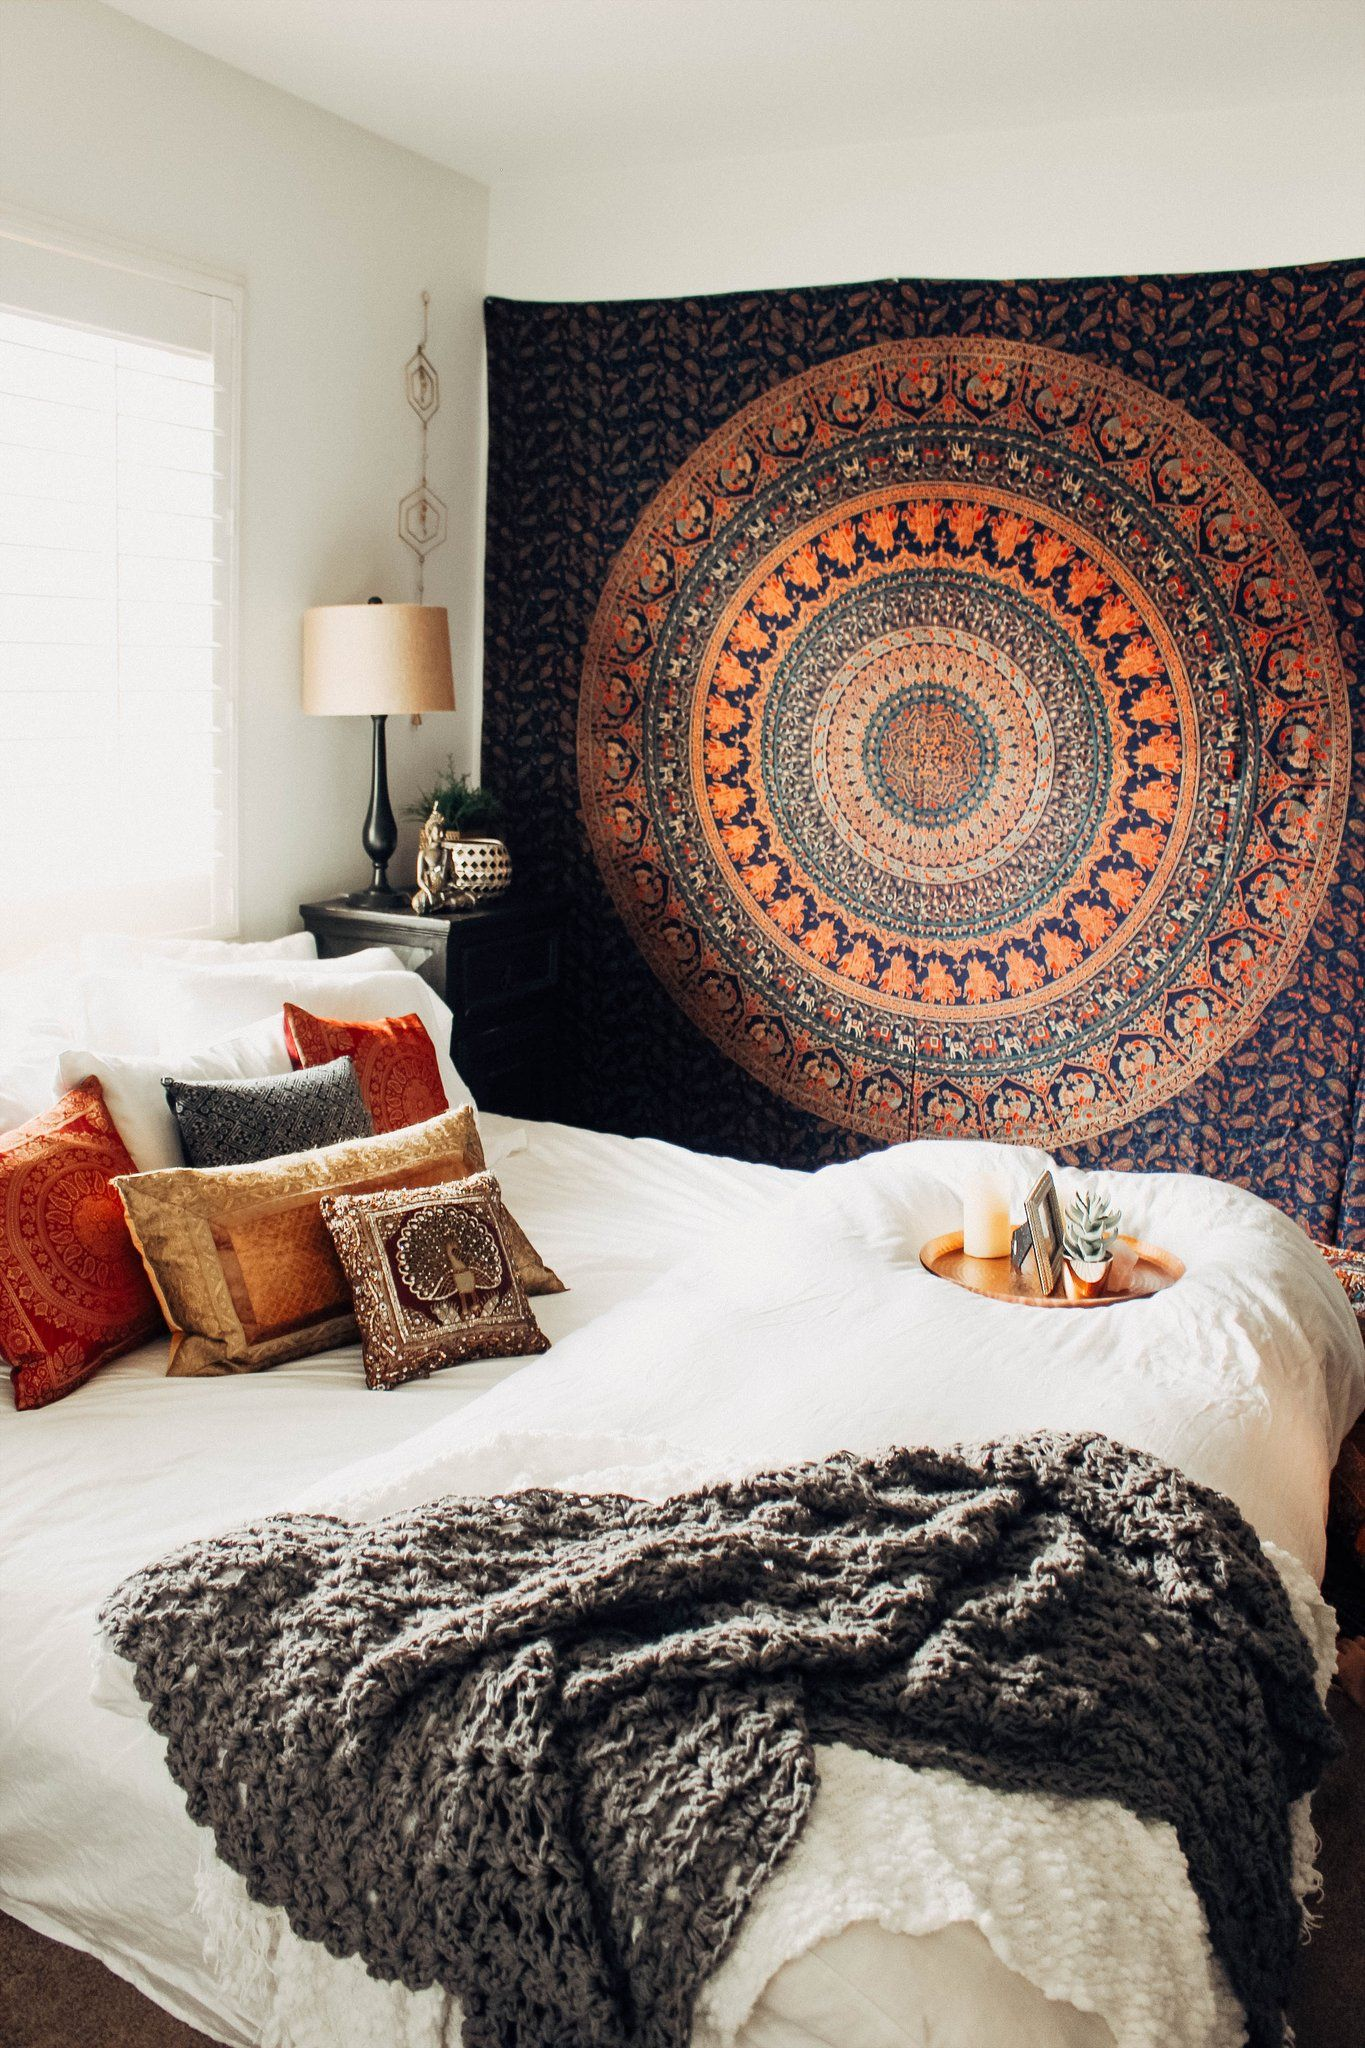 Lady Scorpio Ladyscorpio101 ☽☽ Ladyscorpio101 Com ☆ Perfect Bedroom Decor For The Hippie At H